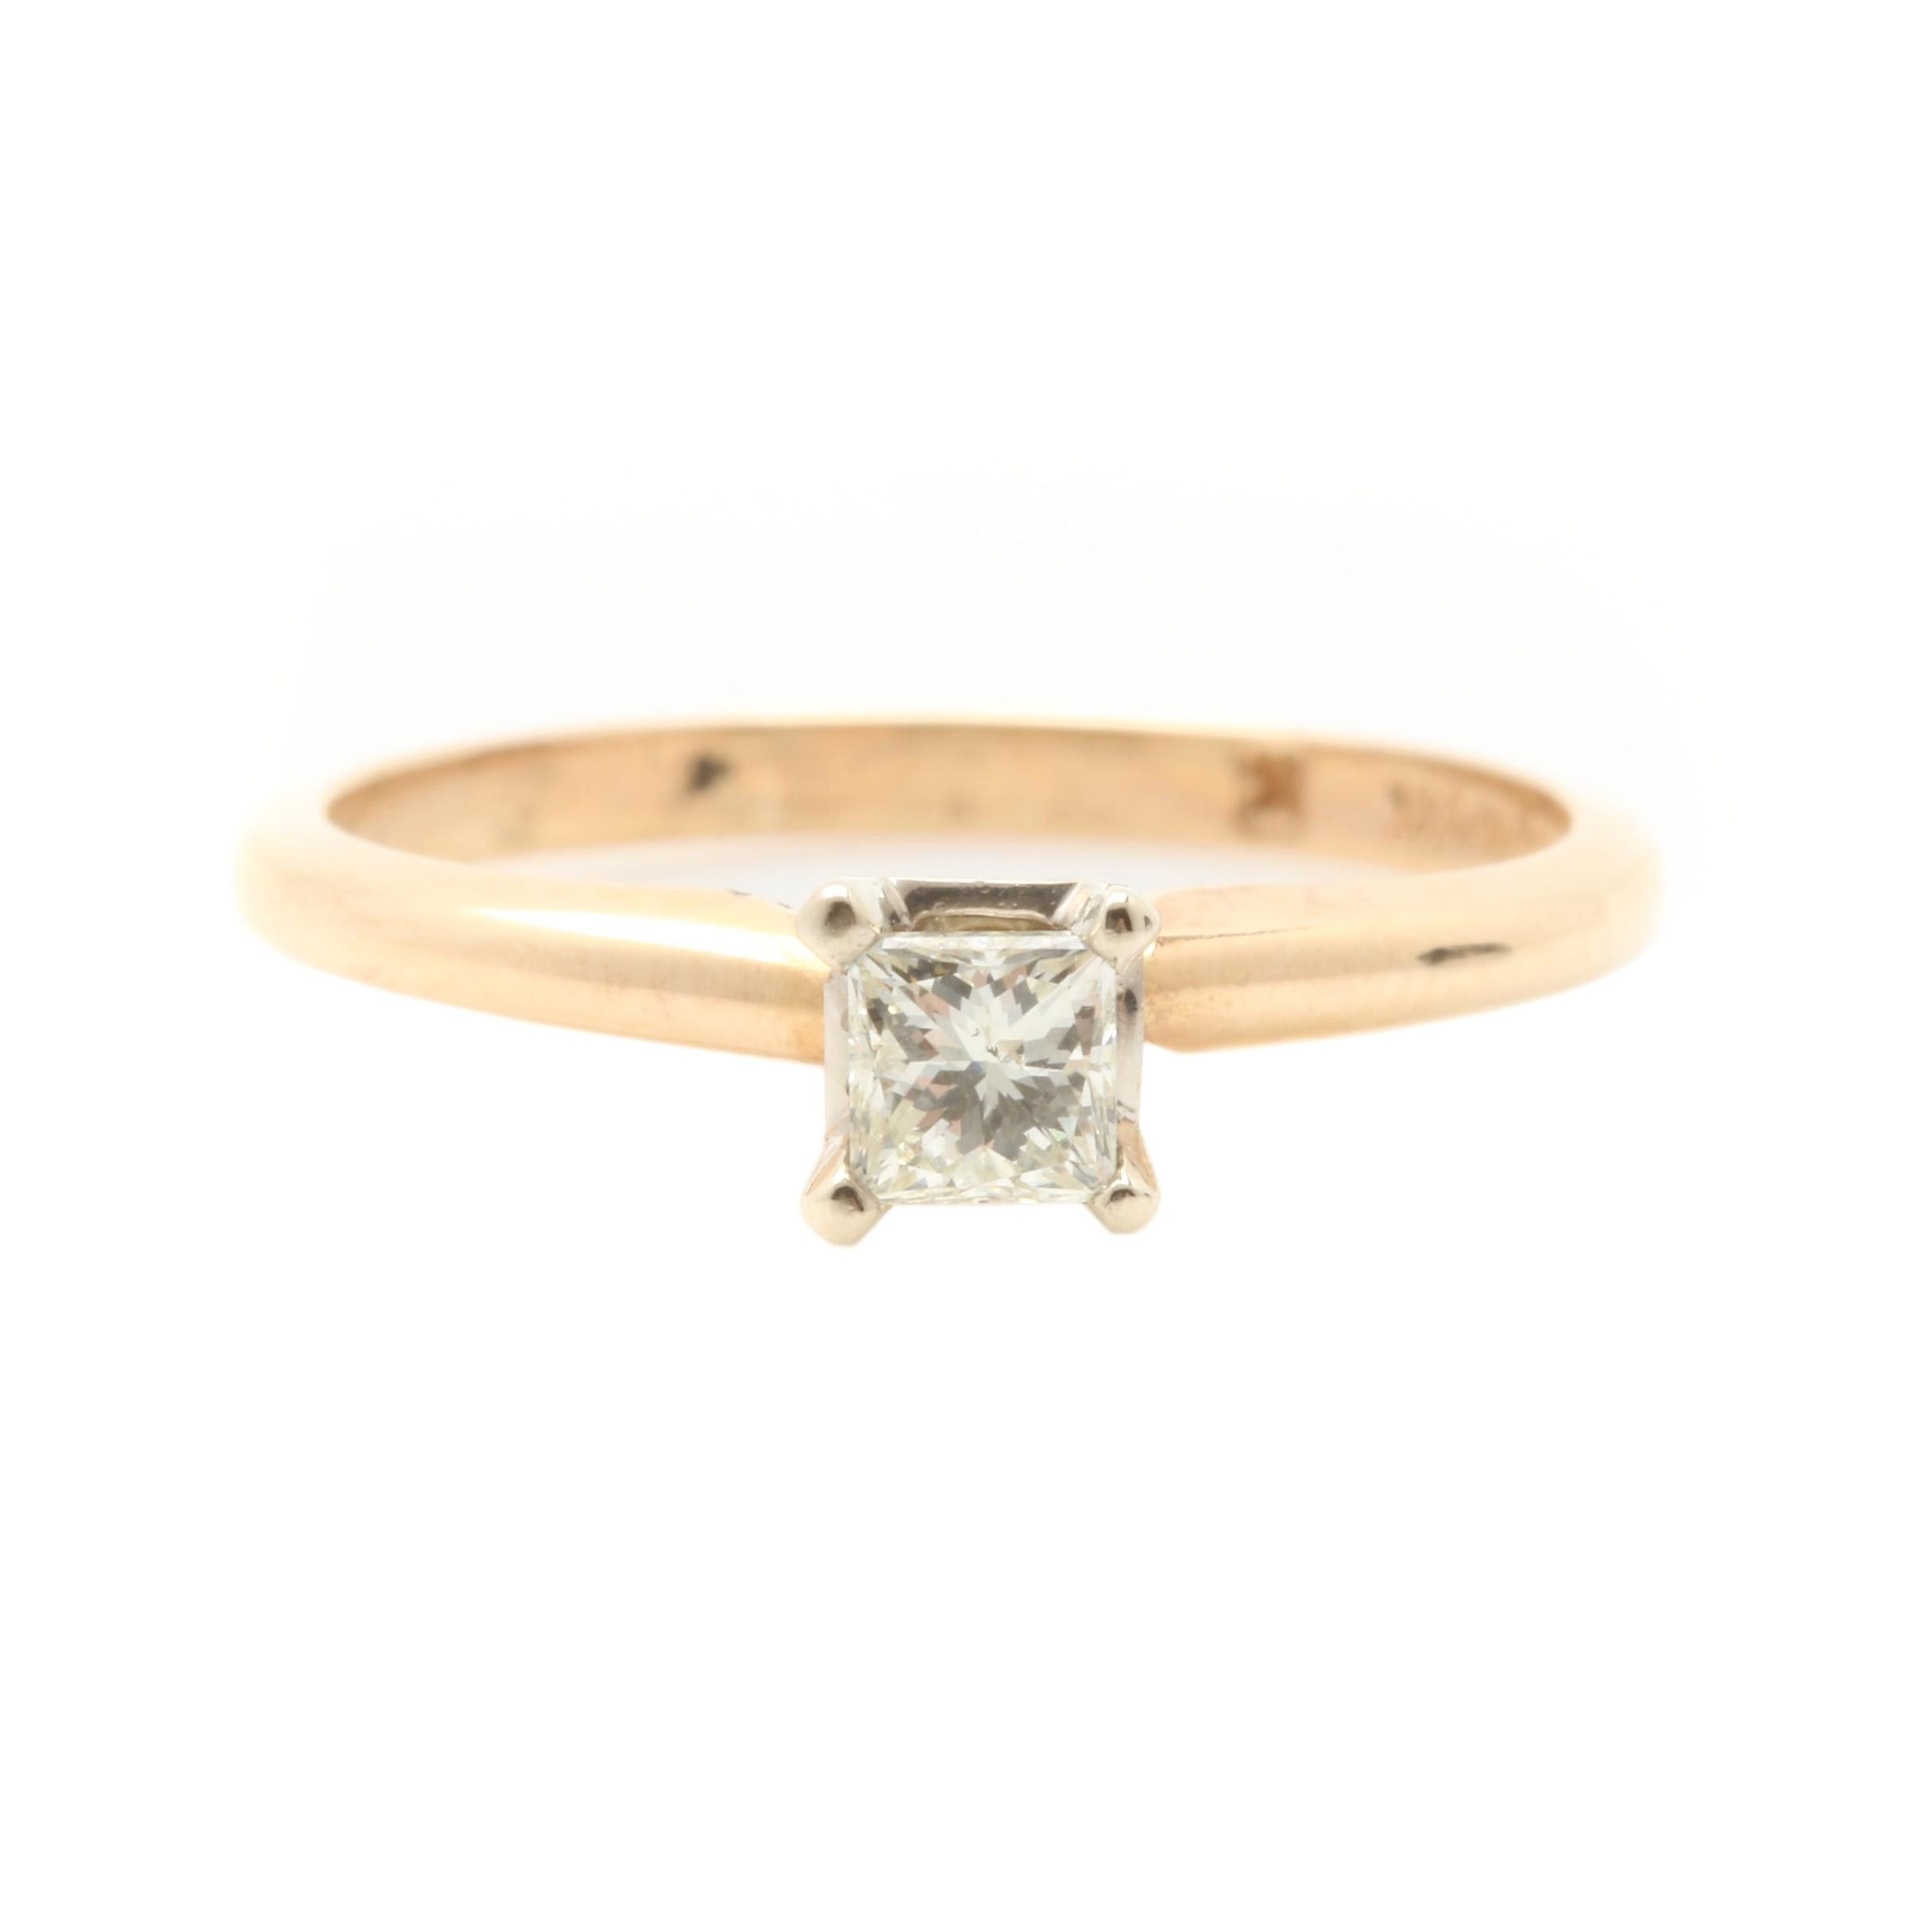 14K Yellow Gold Princess Diamond Solitaire Ring